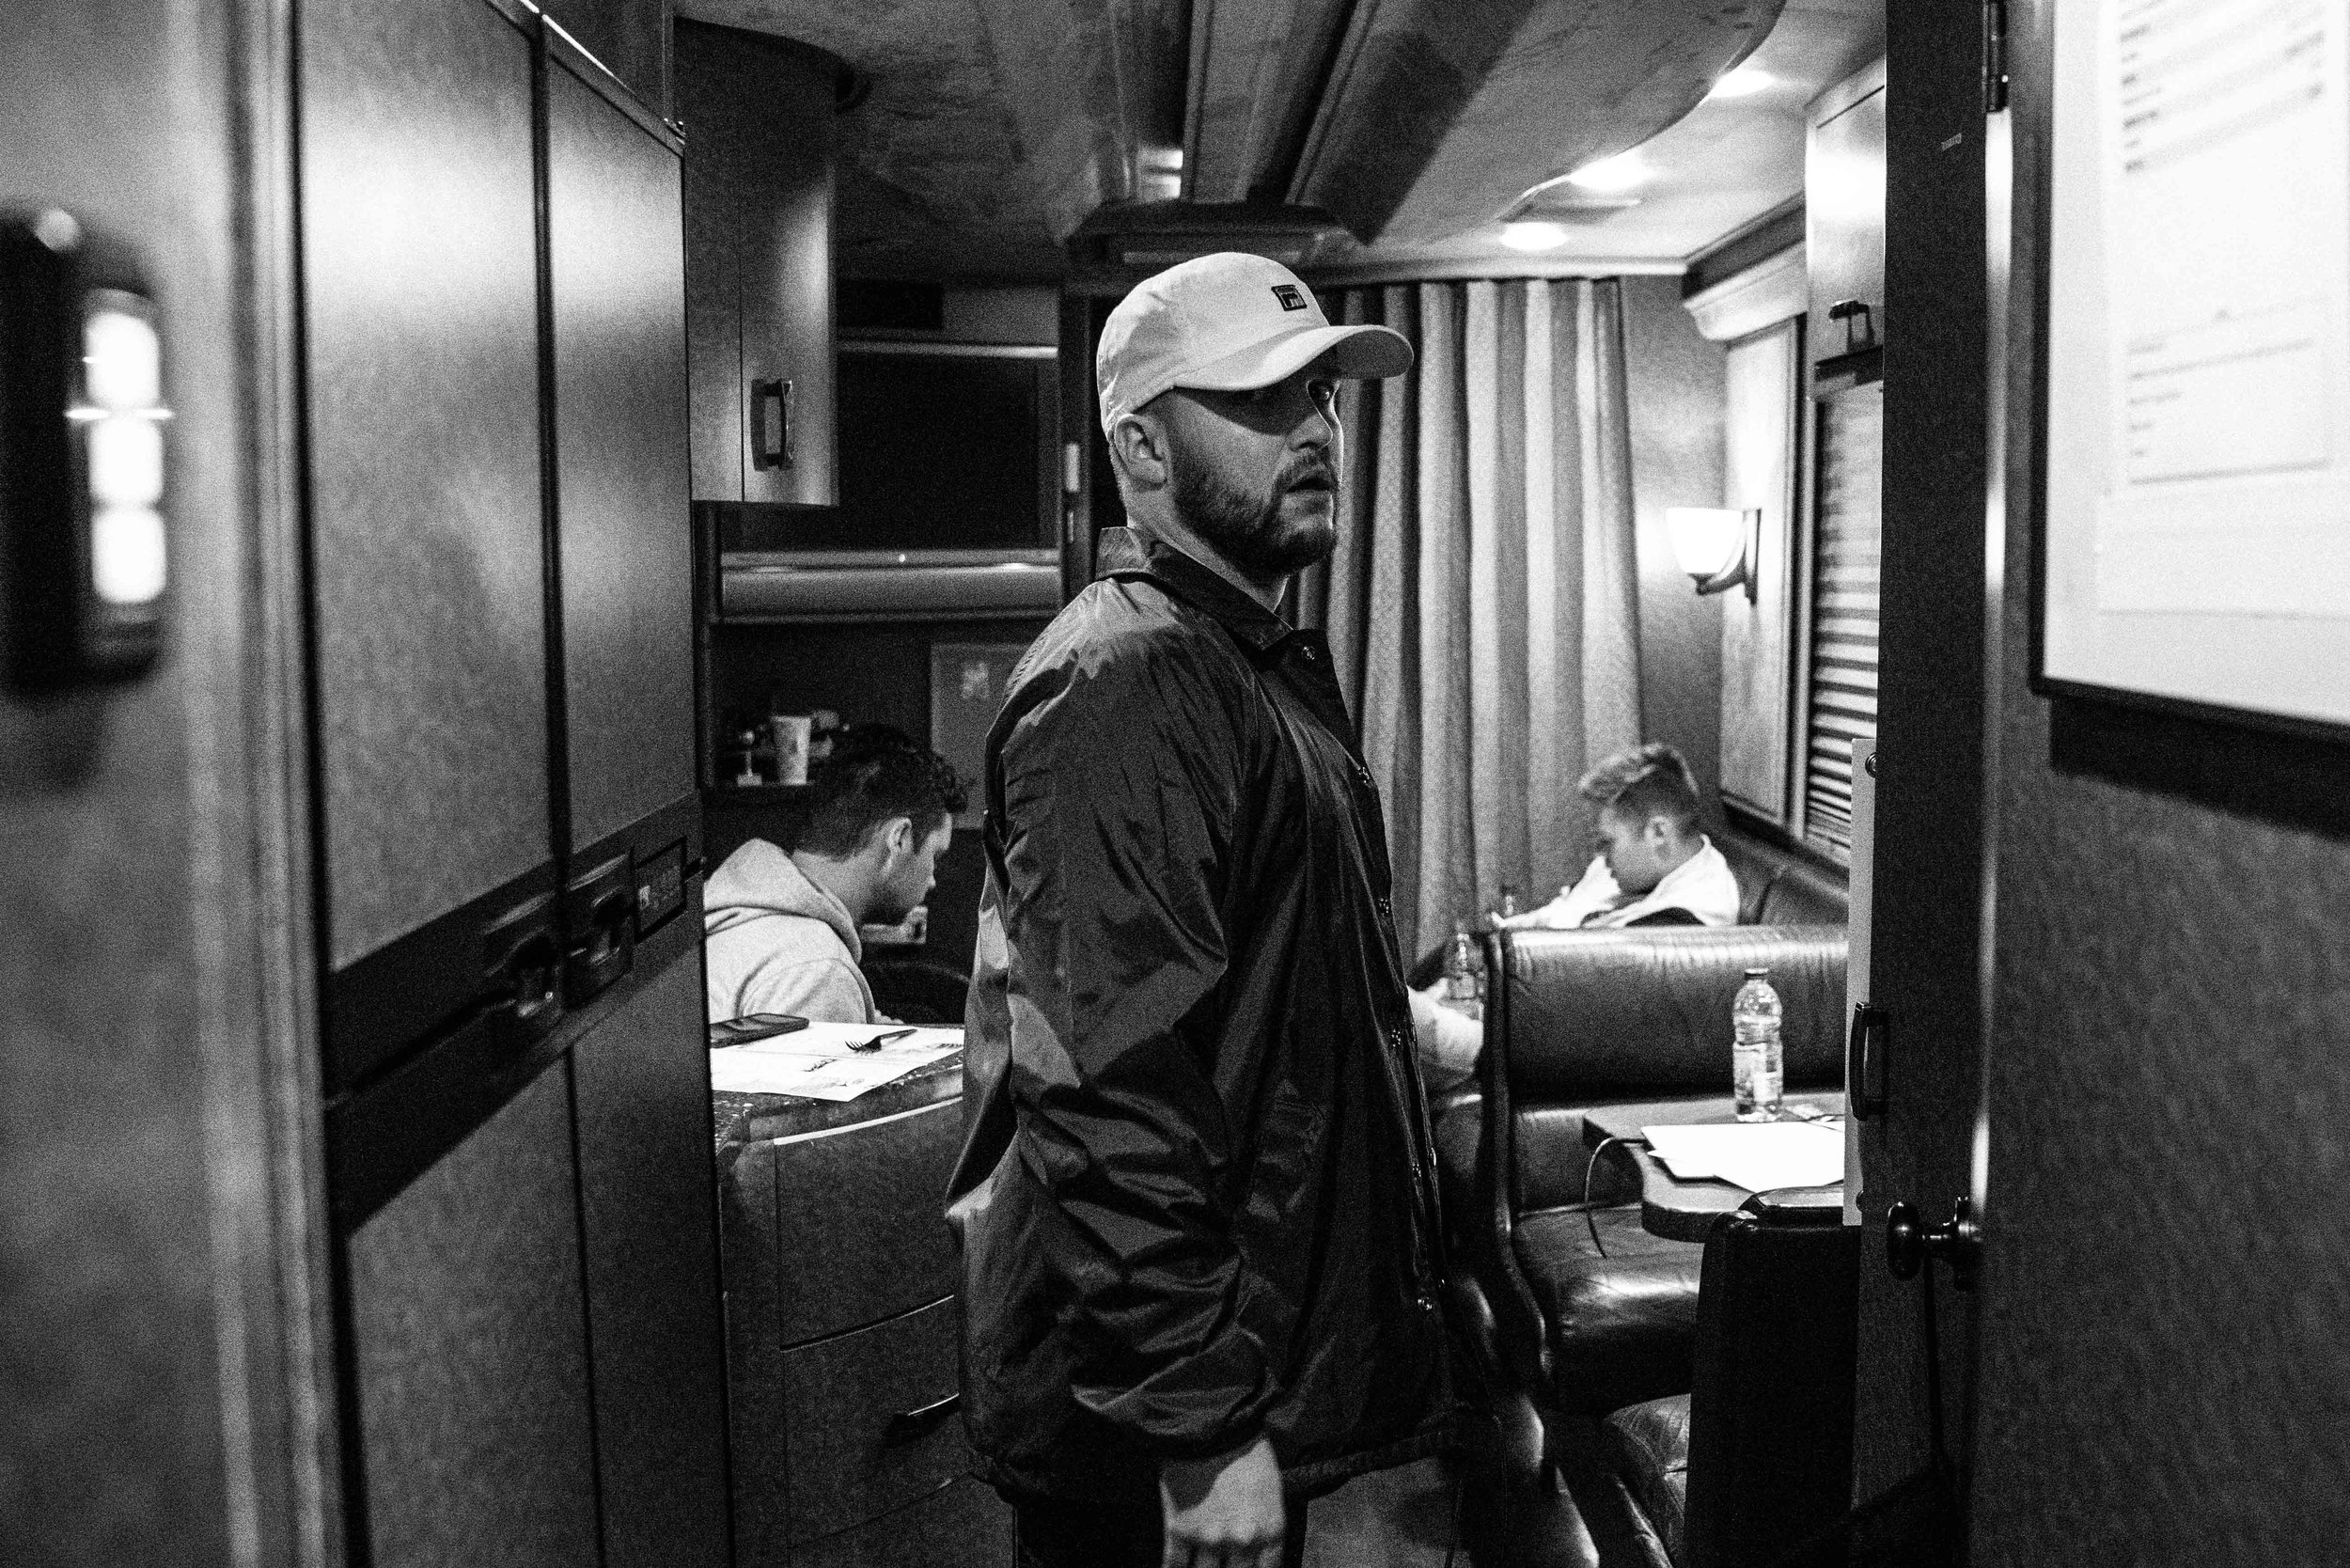 Quinn after show on the bus, 2018